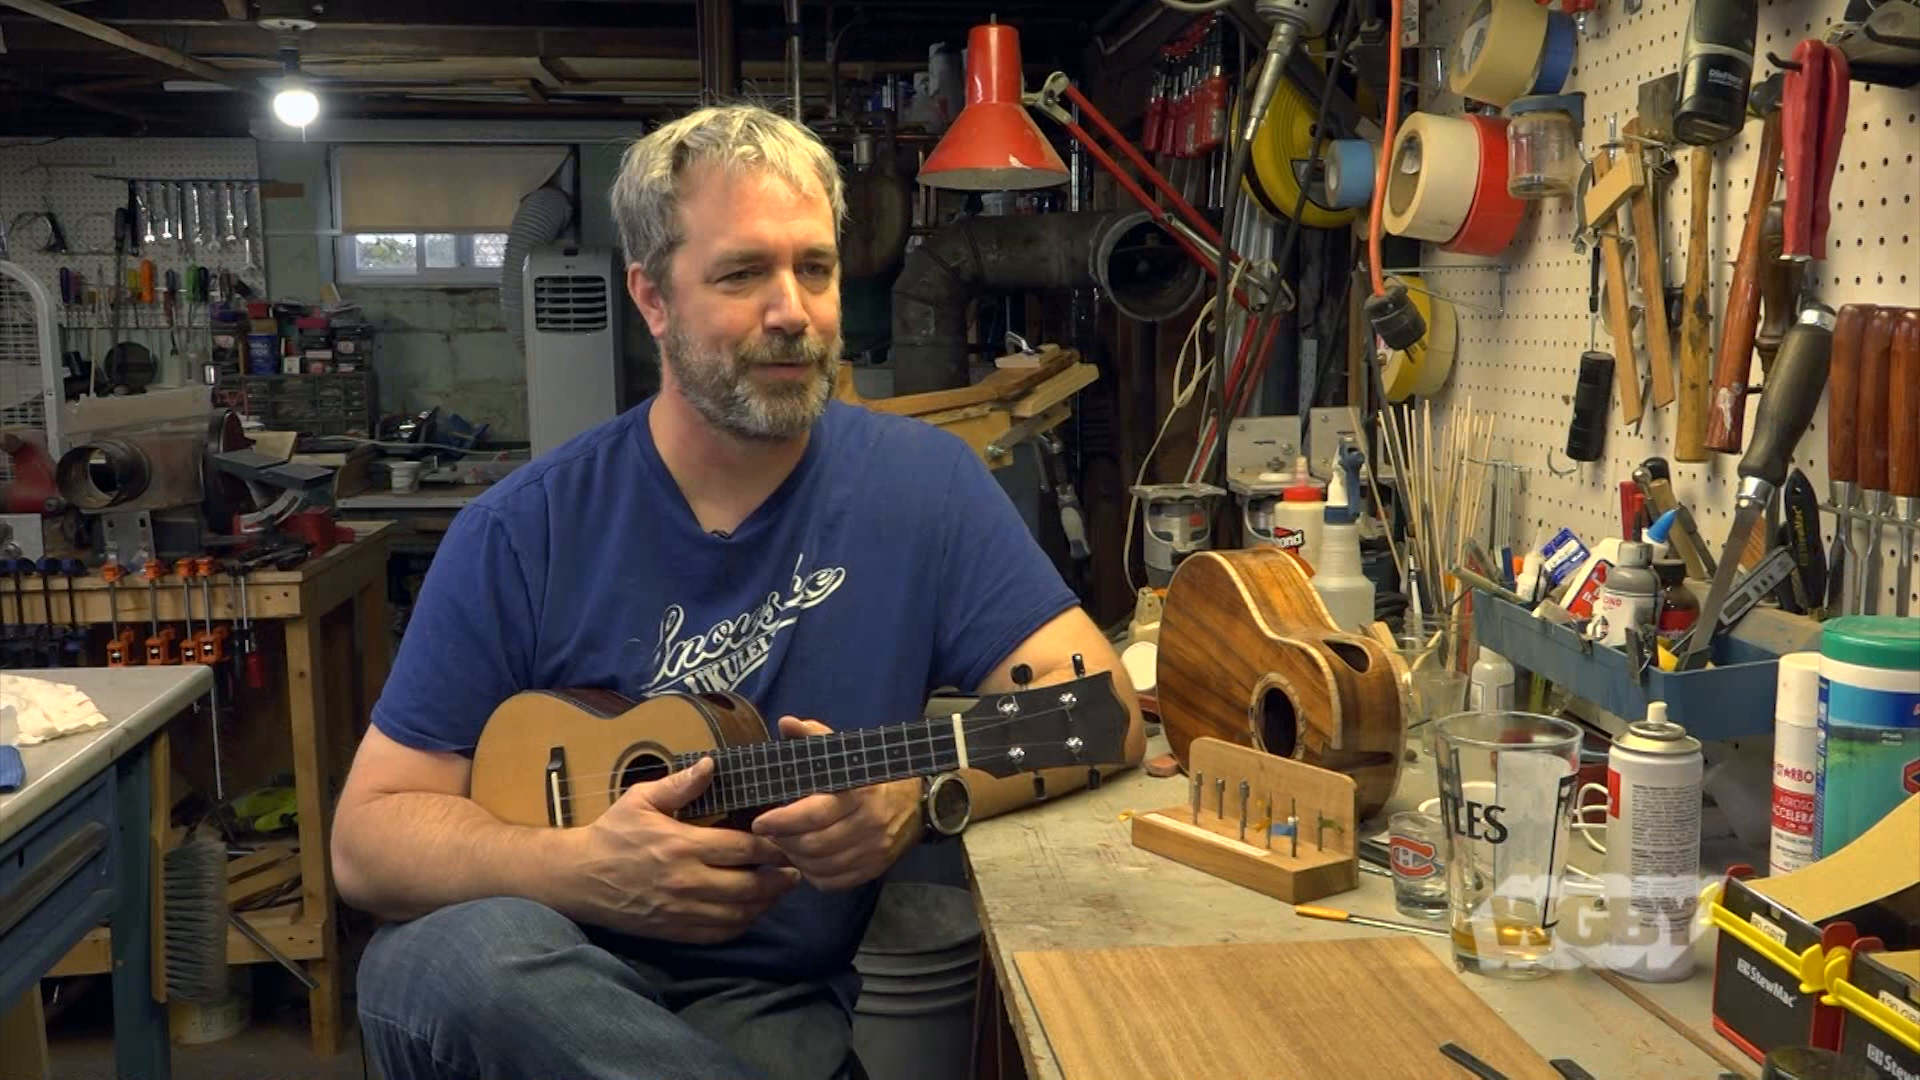 Meet Stephen Beauregard, a guitar maker who fell in love with the ukulele and now creates hand-crafted ukuleles at his Snowshoe Ukulele Company.